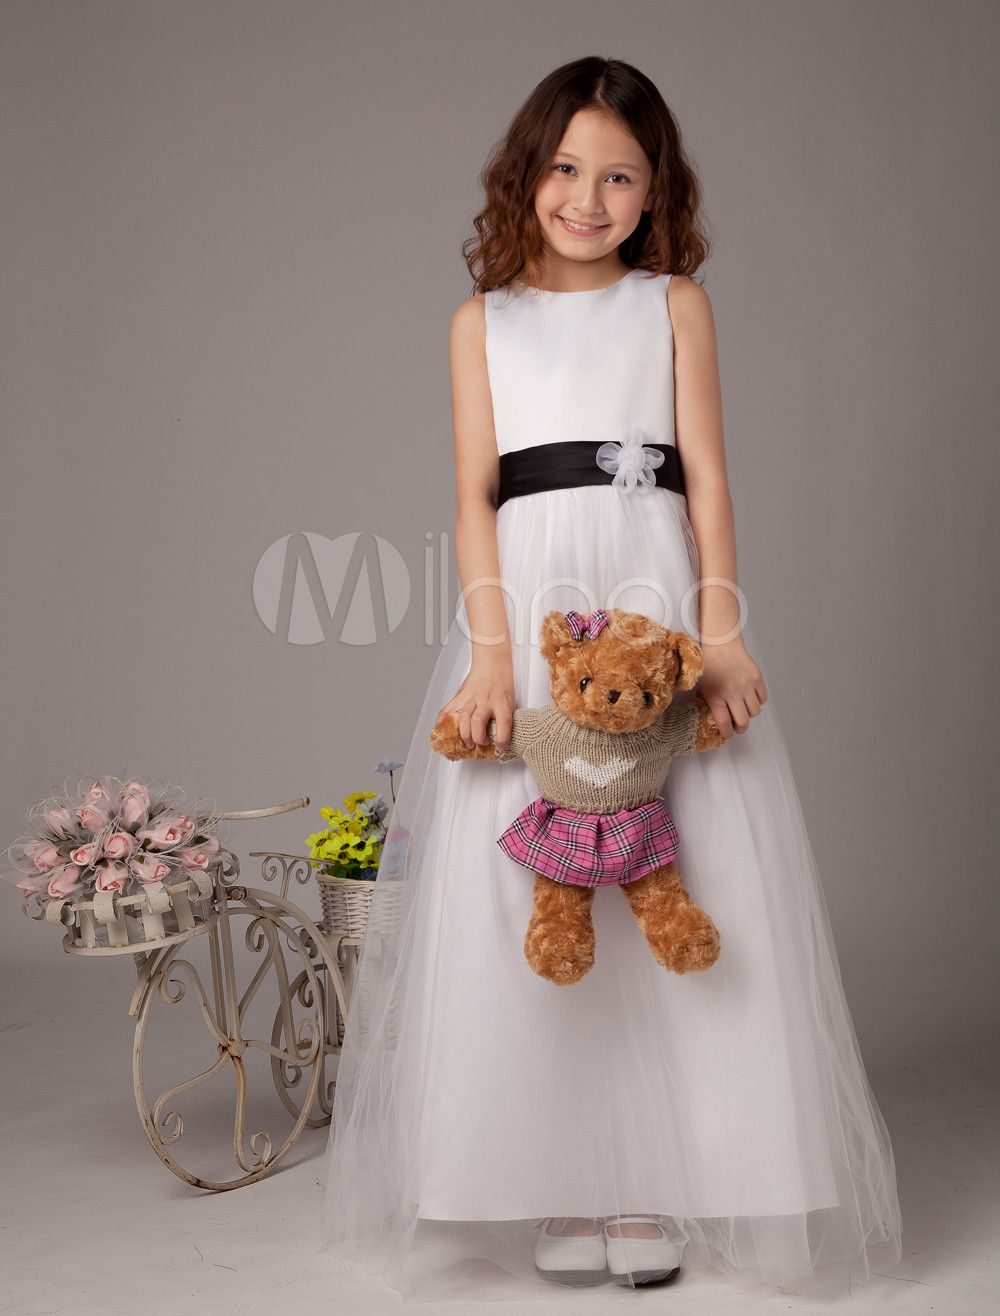 da5dce79421 Romantic Sleeveless Sash Satin Flower Girl Dress  Sash